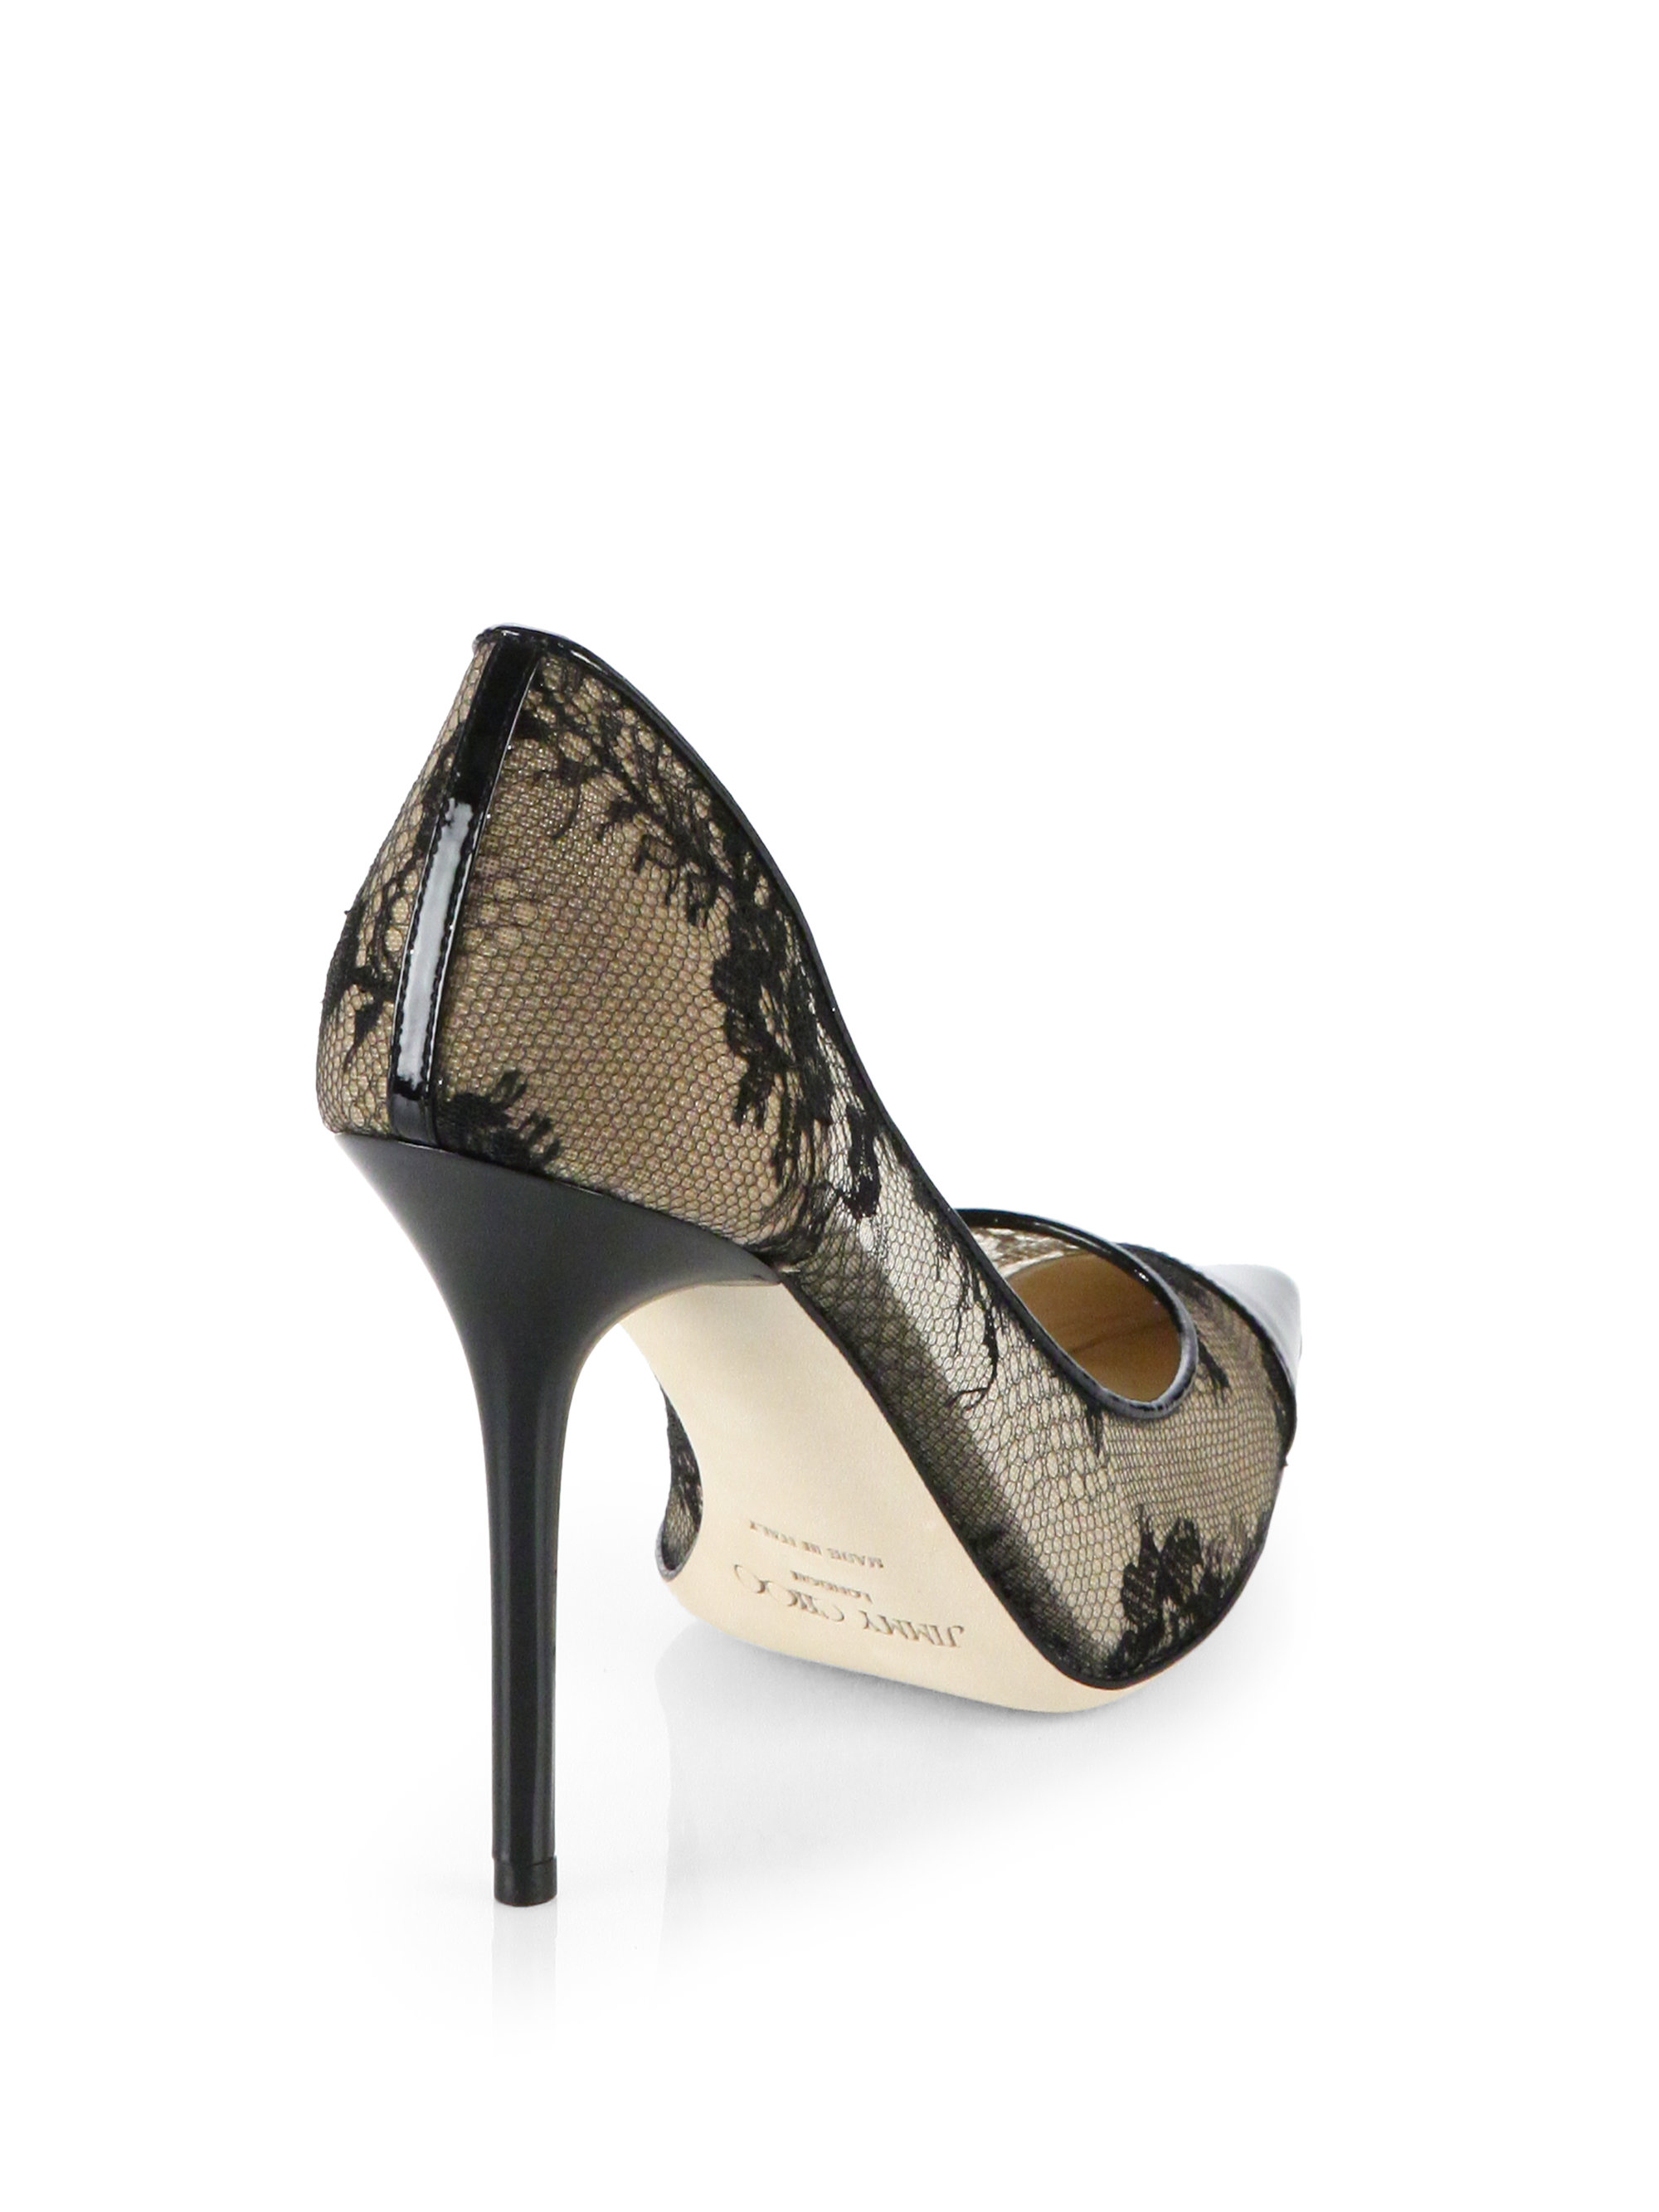 61c8acbe72f ... germany lyst jimmy choo amika lace patent leather pumps in black 33ff8  951e4